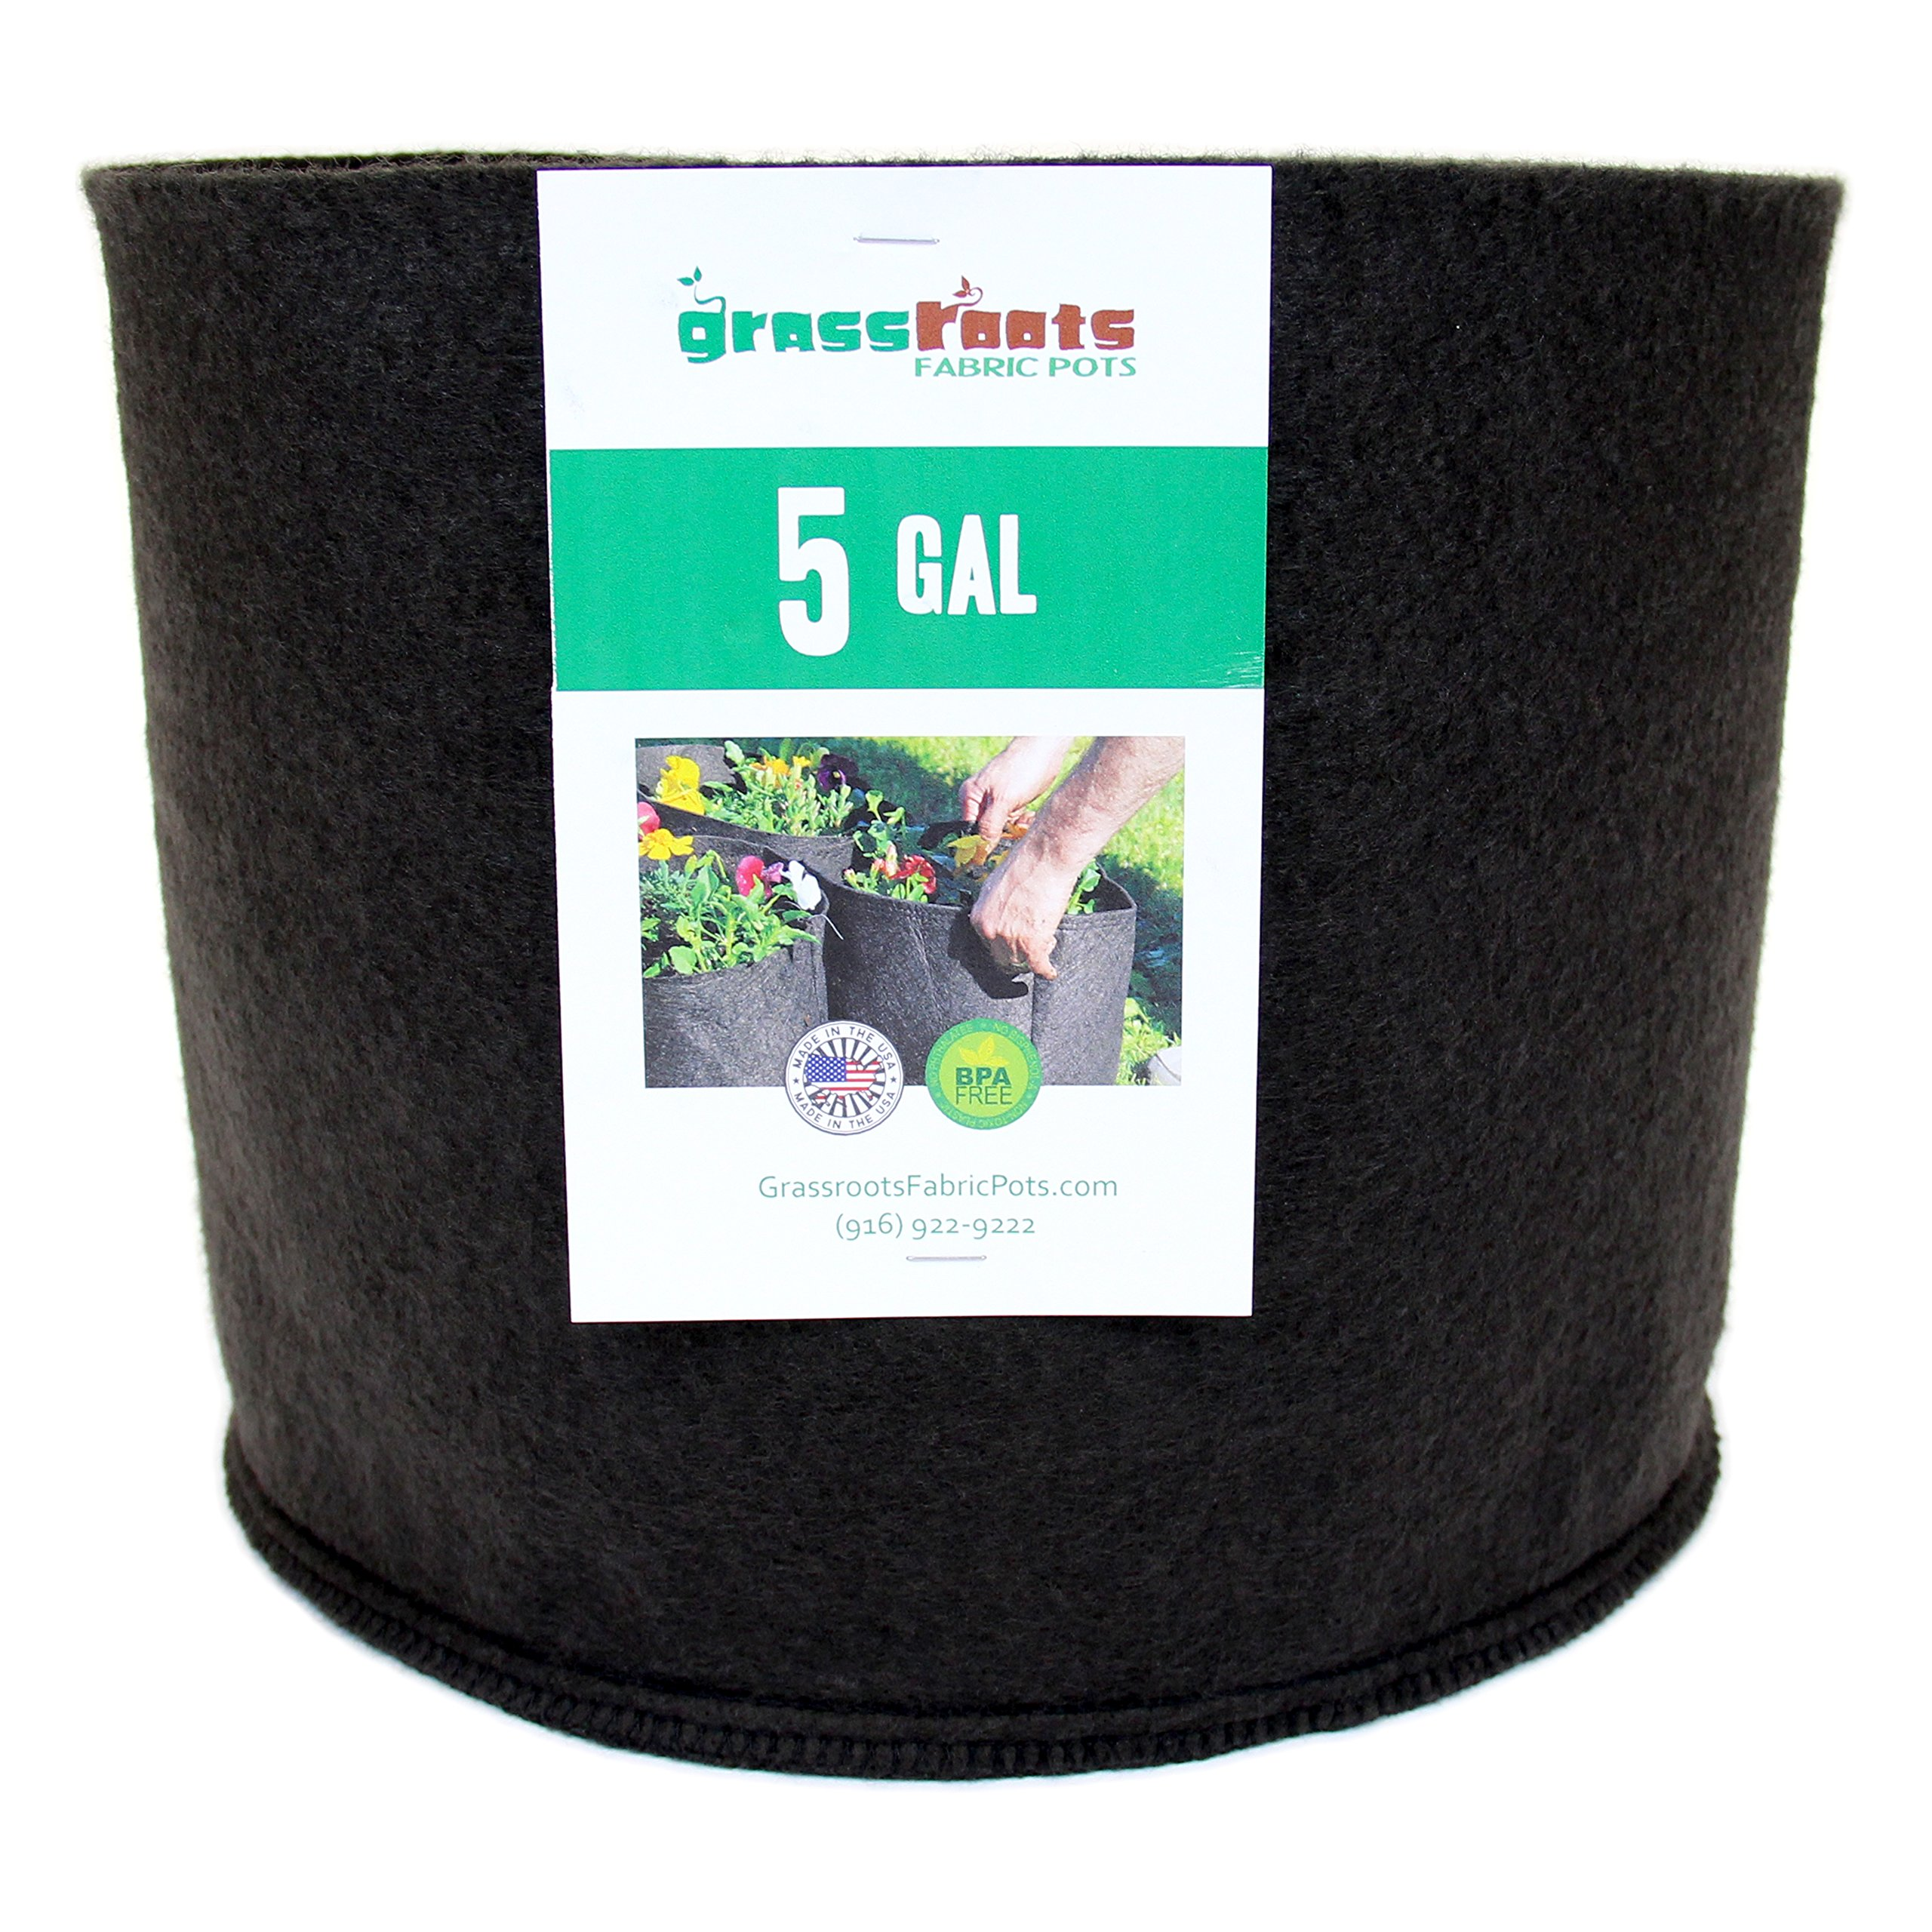 (50 Pack) 5 Gallon Black Grassroots Fabric Pot - Grow Pot and Aeration Container